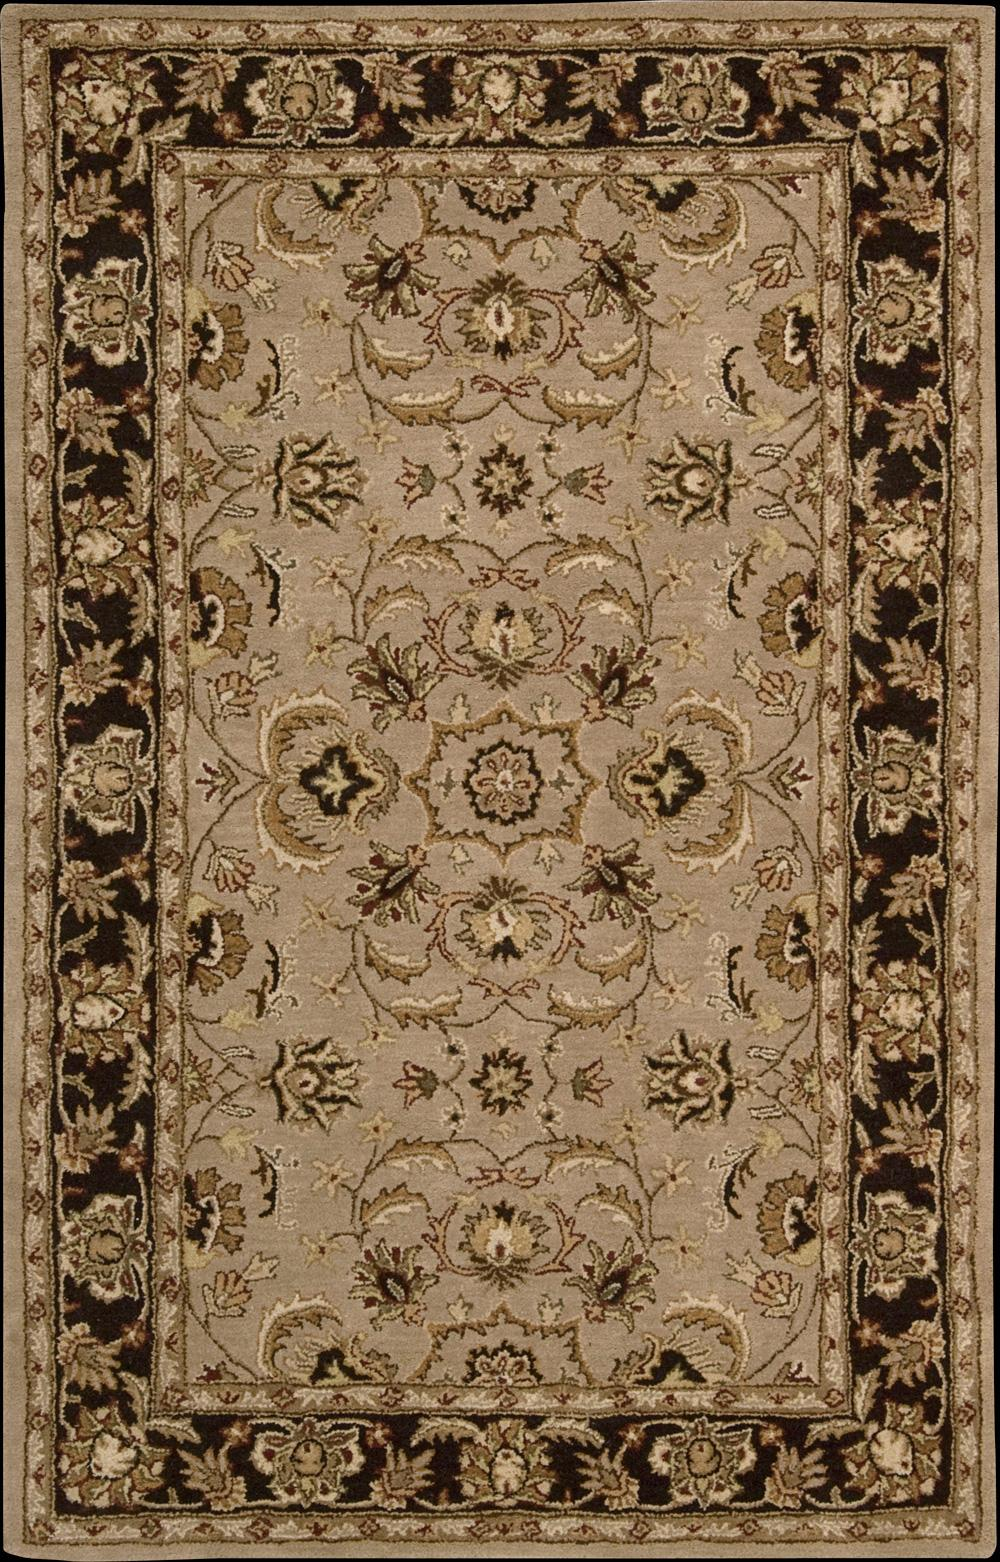 Nourison India House Area Rug 5' x 8' - Item Number: 41619